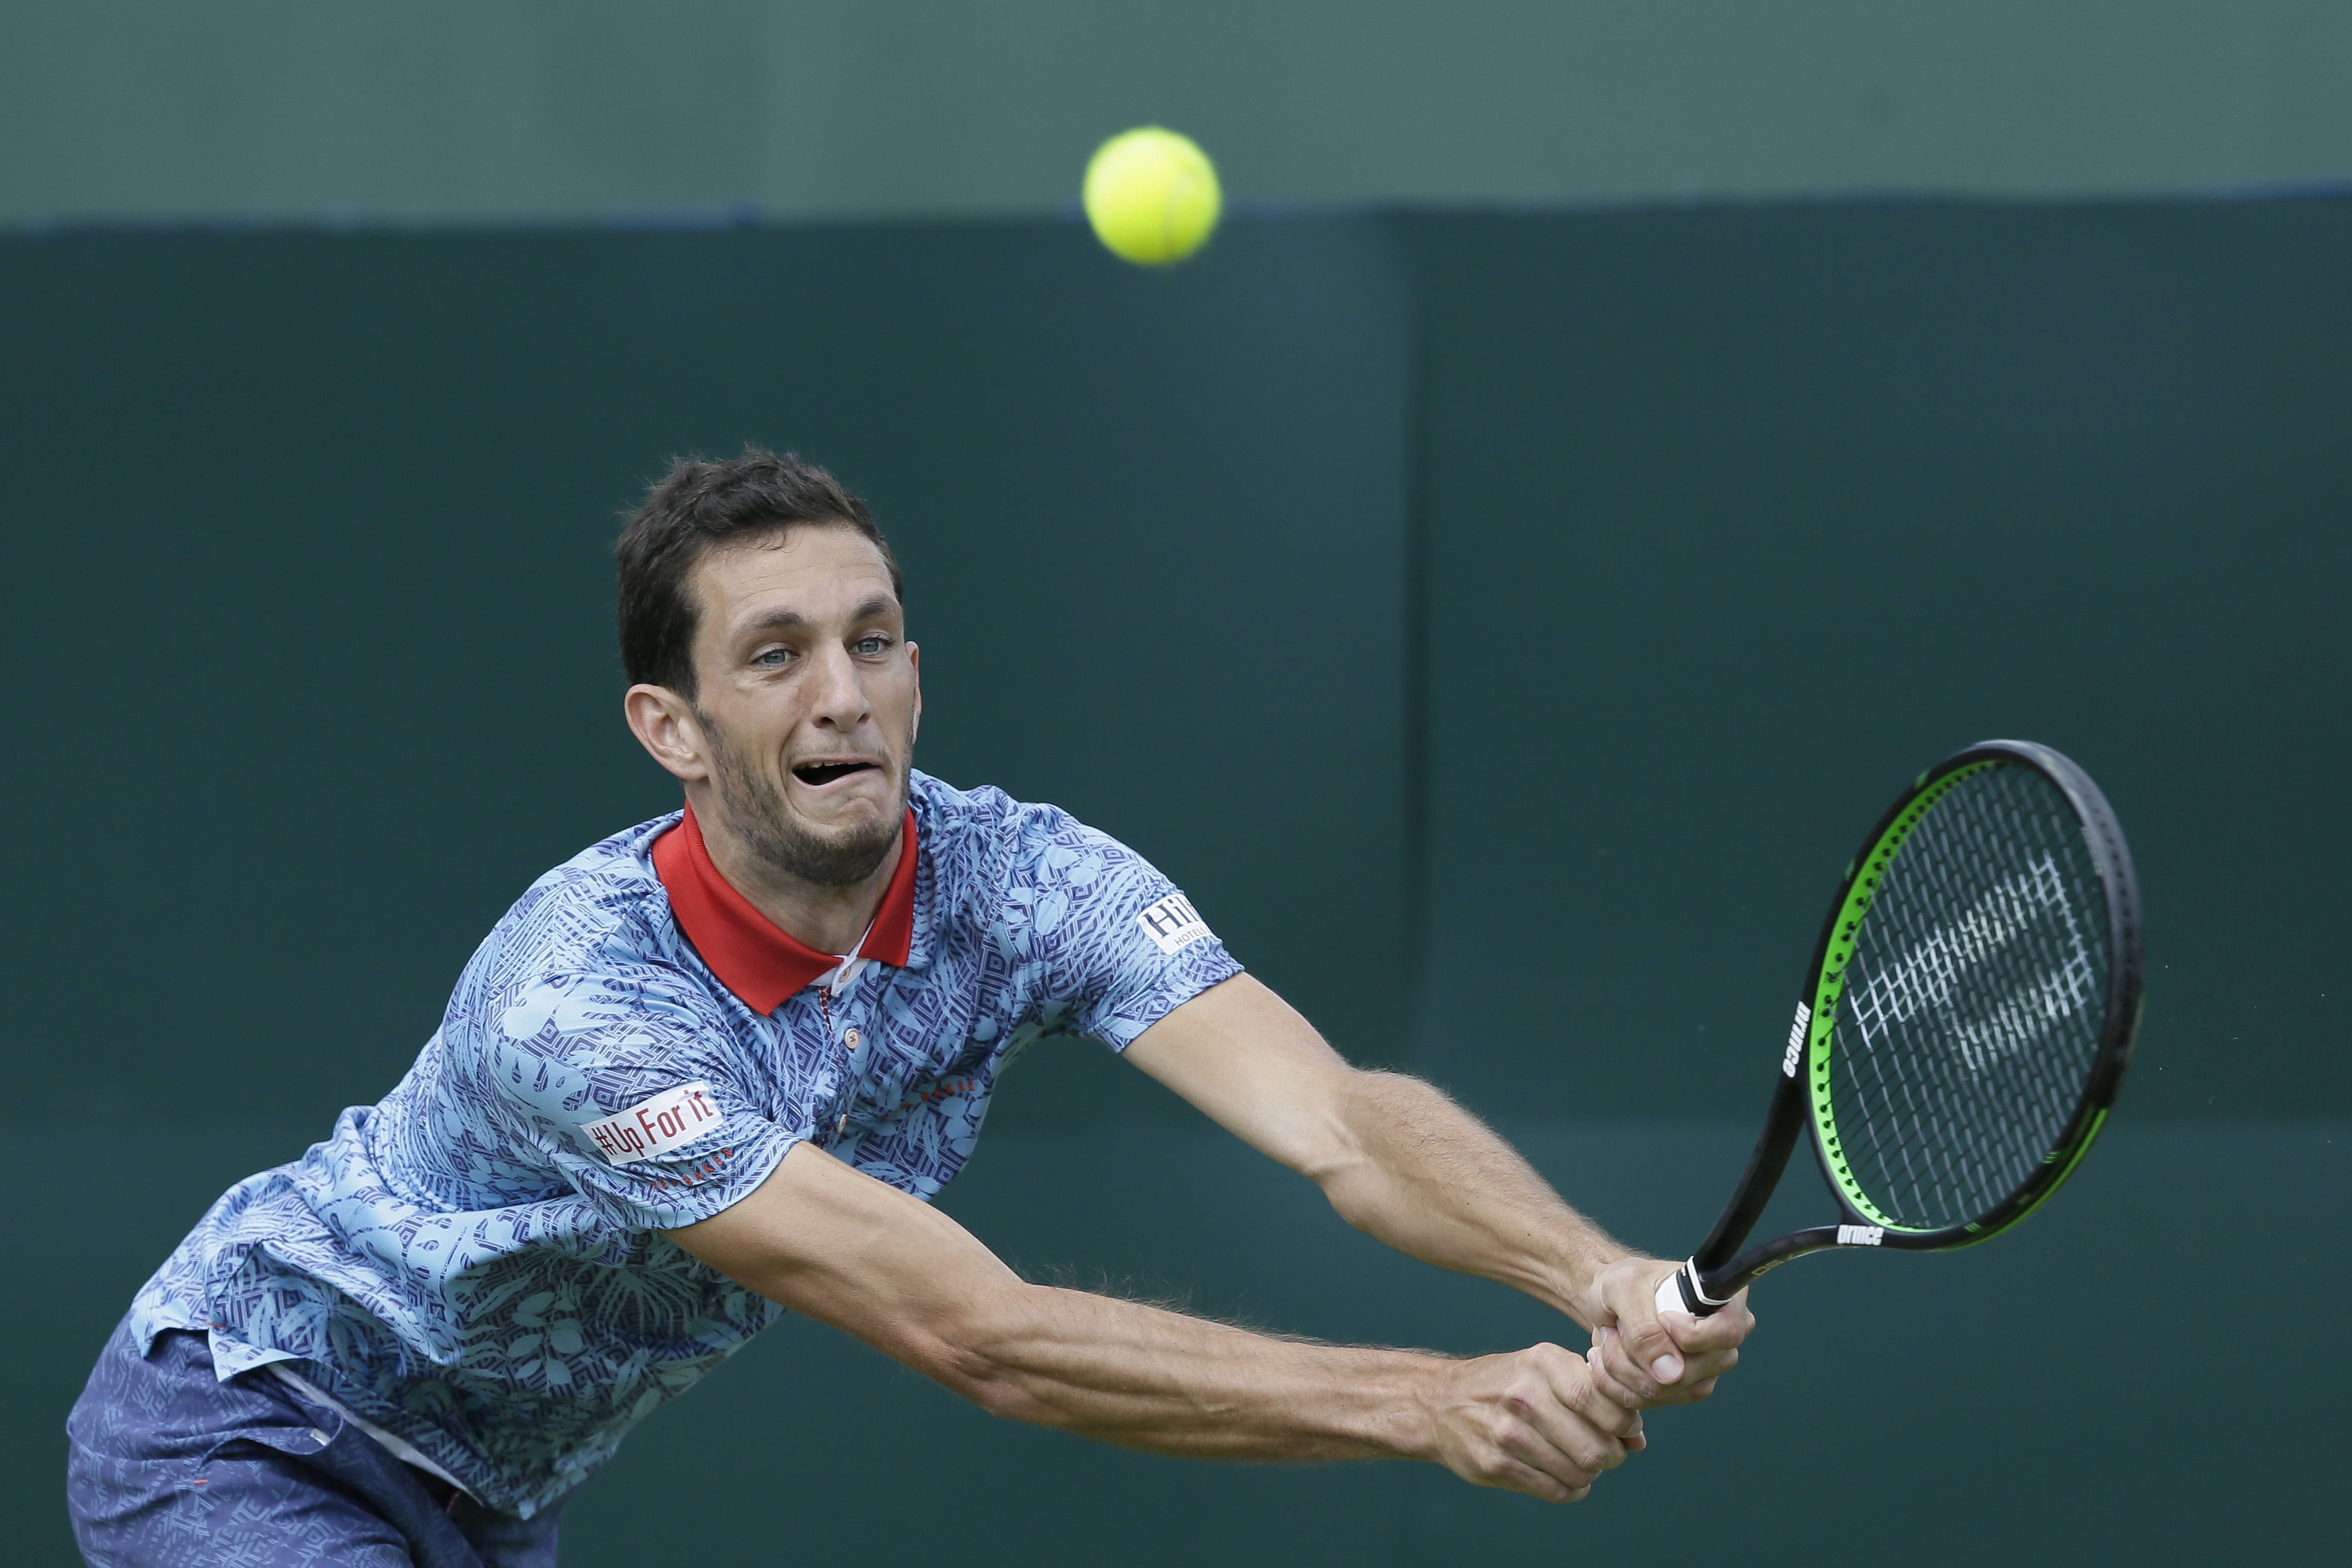 Britain's James Ward plays a return to France's Gilles Simon during the quarterfinal match between Britain and France in the Davis Cup at the Queen's Club in London, Friday July 17, 2015. (AP Photo/Tim Ireland)